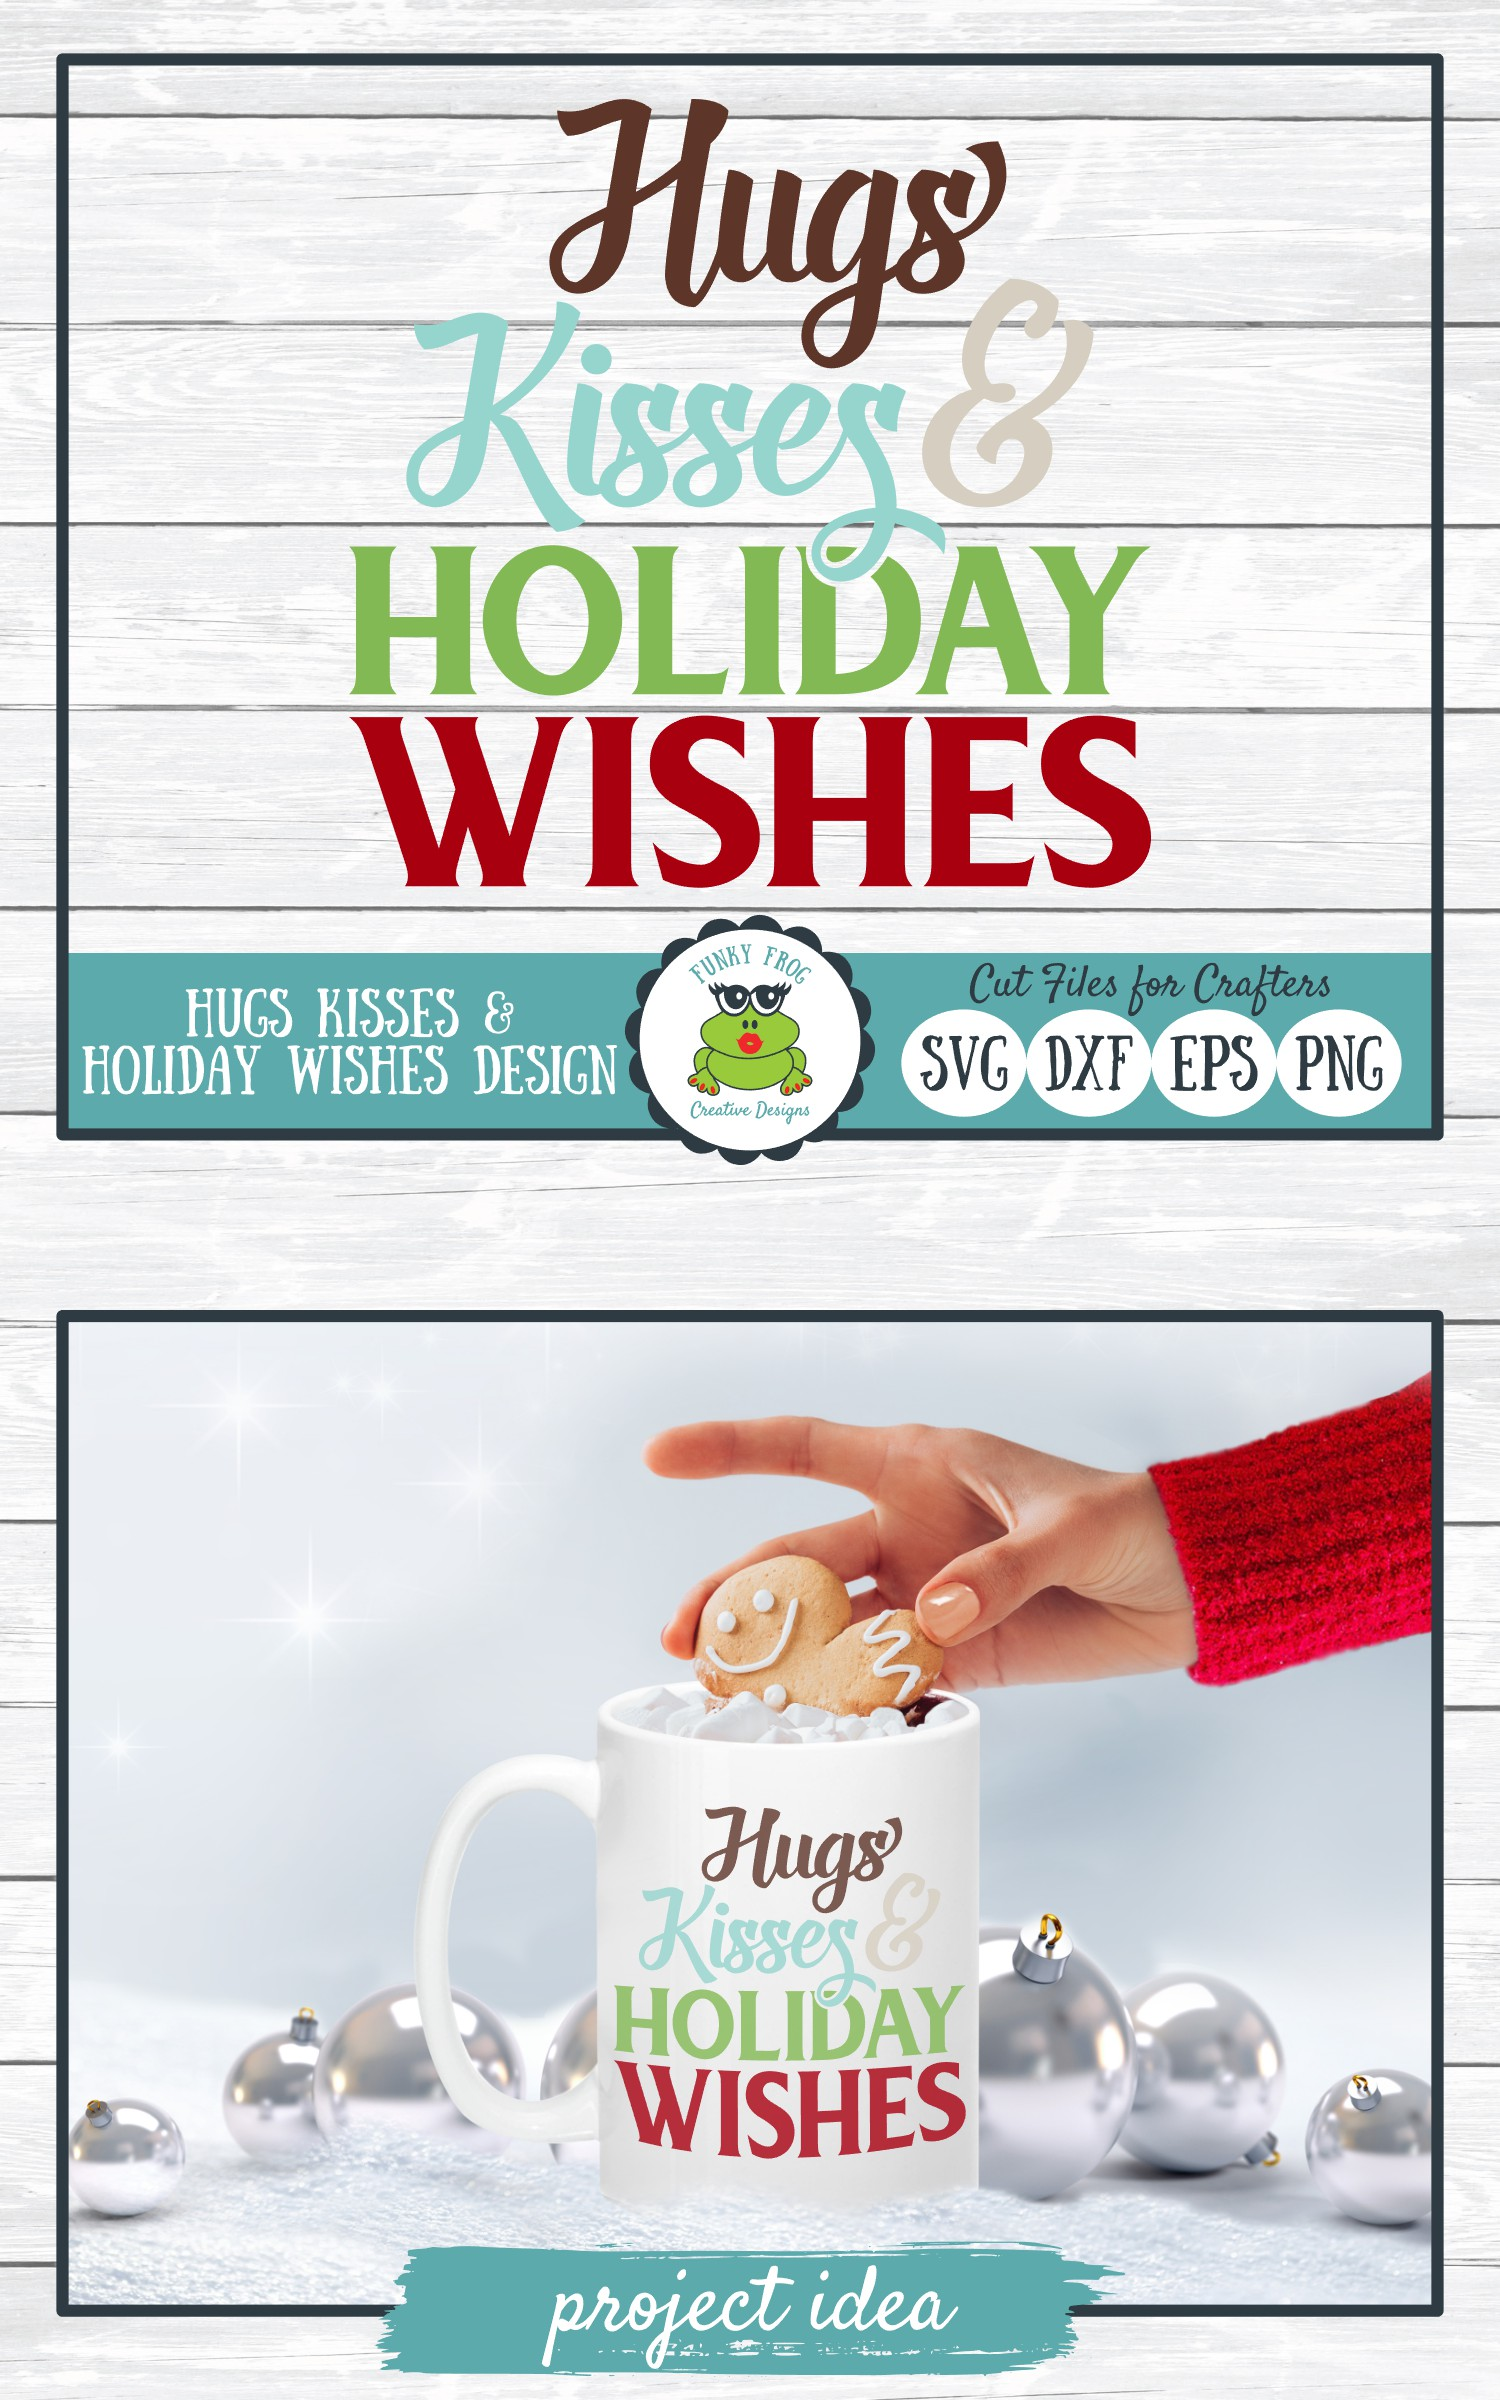 Hugs Kisses & Holiday Wishes, Winter Holiday SVG Cut File example image 4